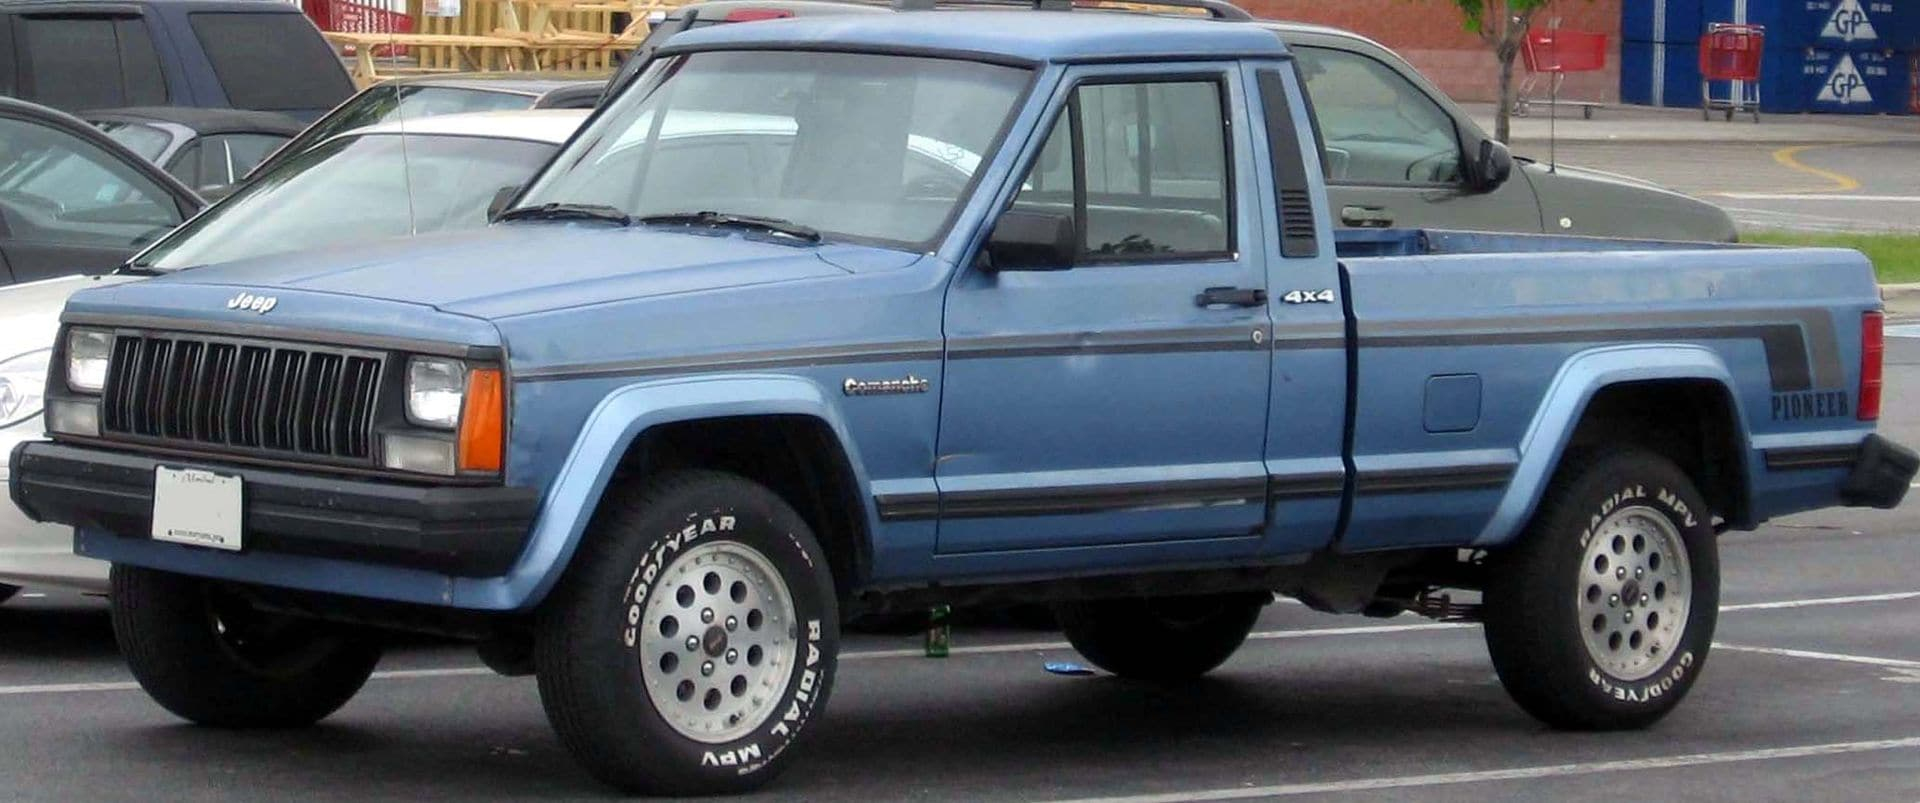 Used Jeep Comanche Pioneer - Dave Sinclair Chrysler Dodge Jeep Ram Eureka MO 63025